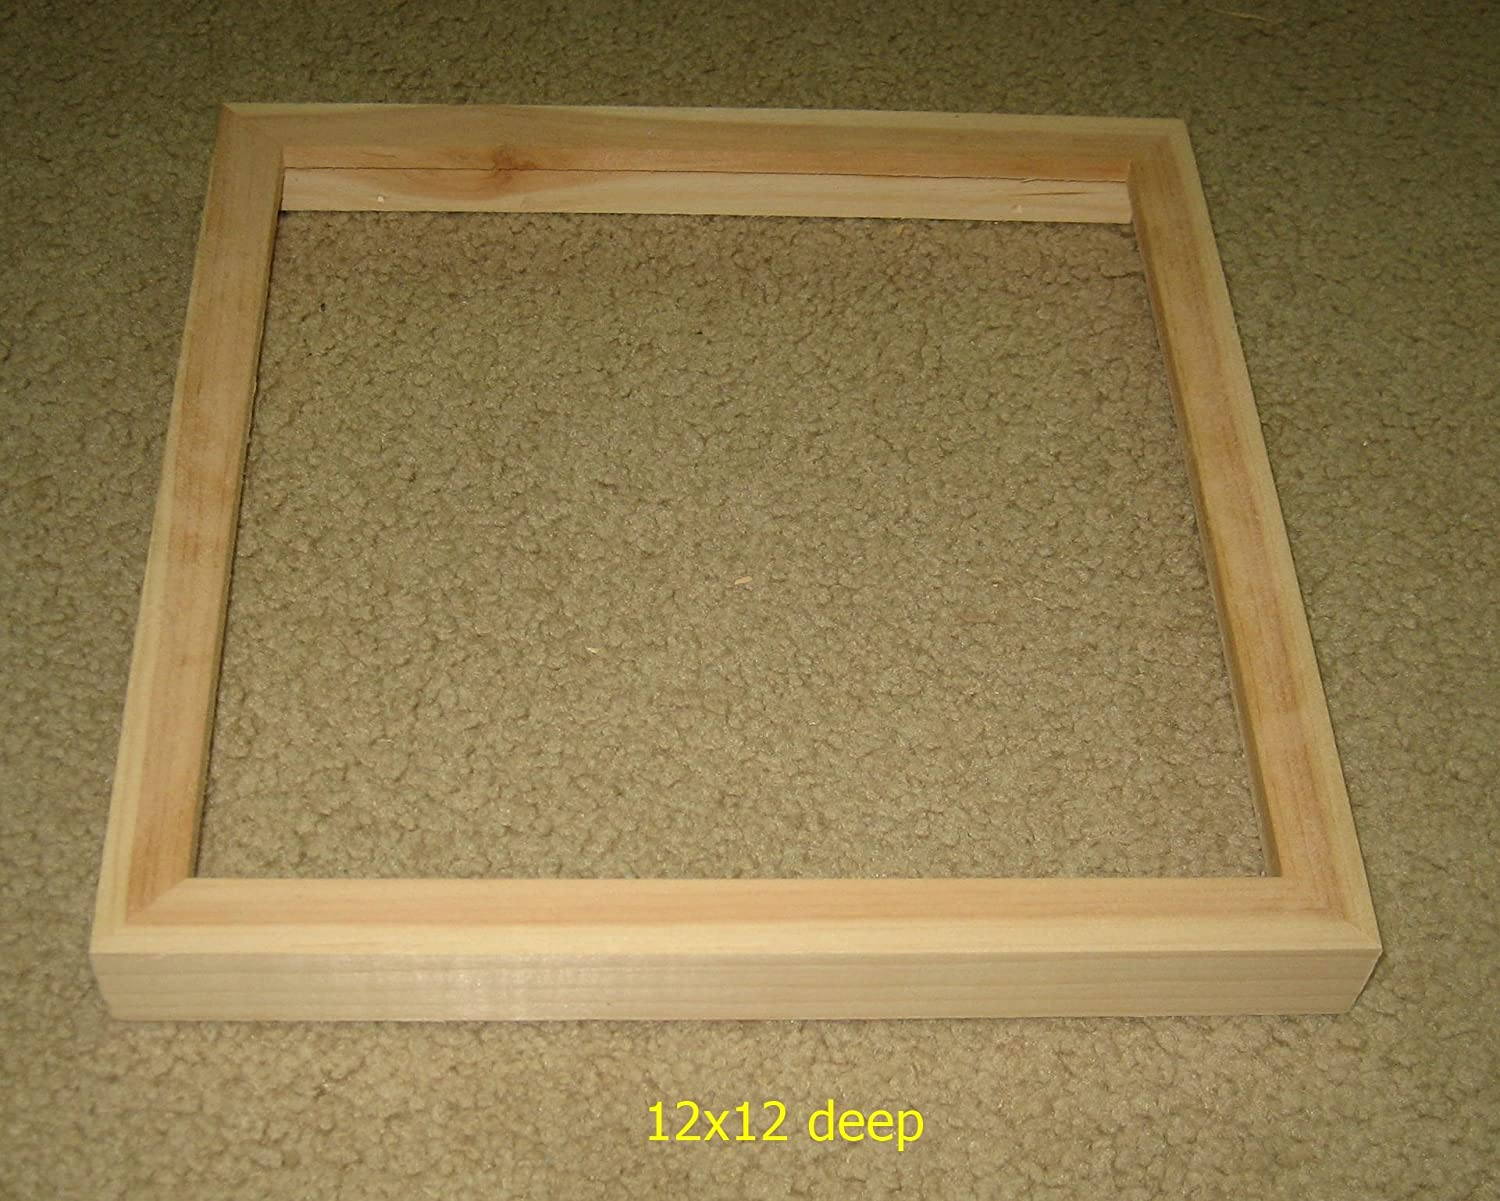 Amazon.com: 12x12 picture frame with DEEP rabbet for canvases ...